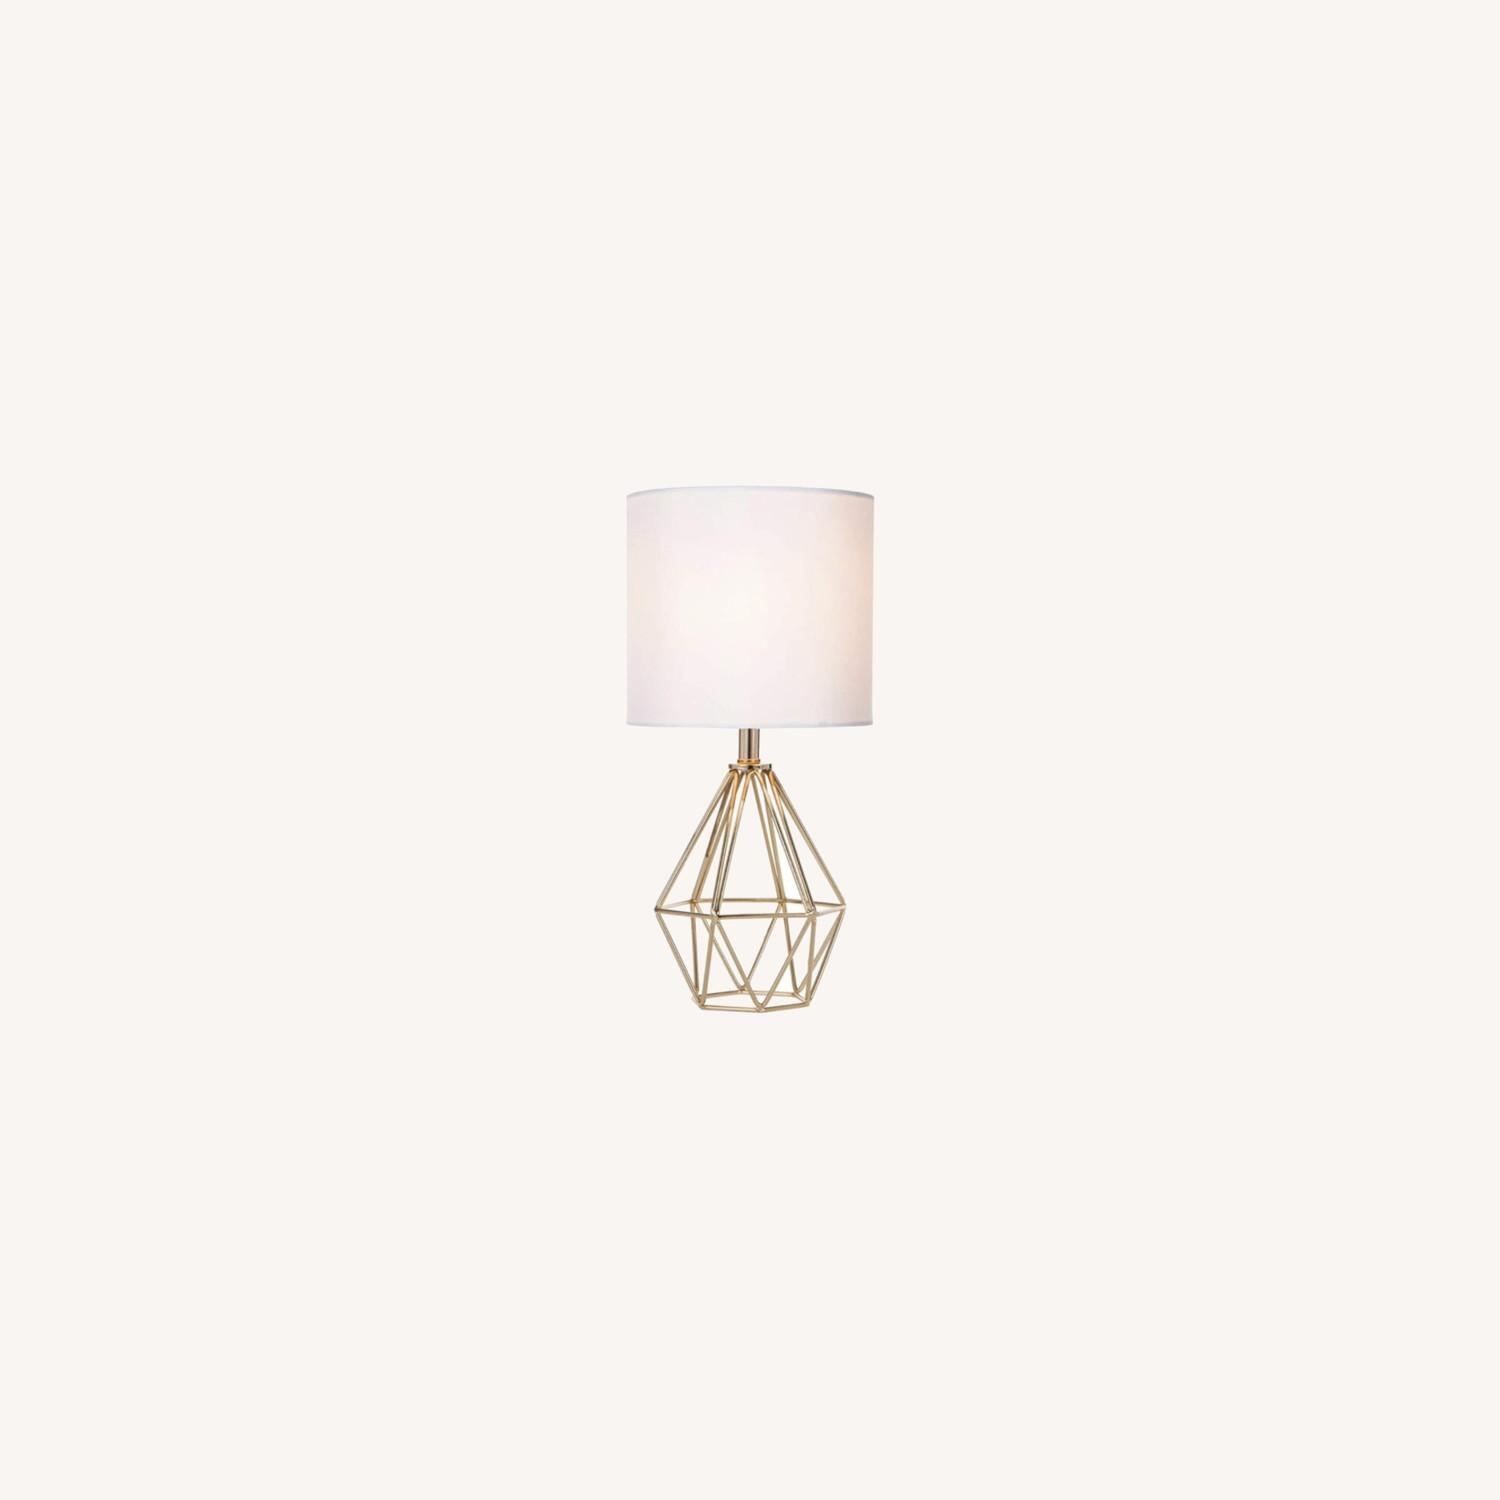 Modern Chic Desk Table Lamp with Gold Metal Base - image-0